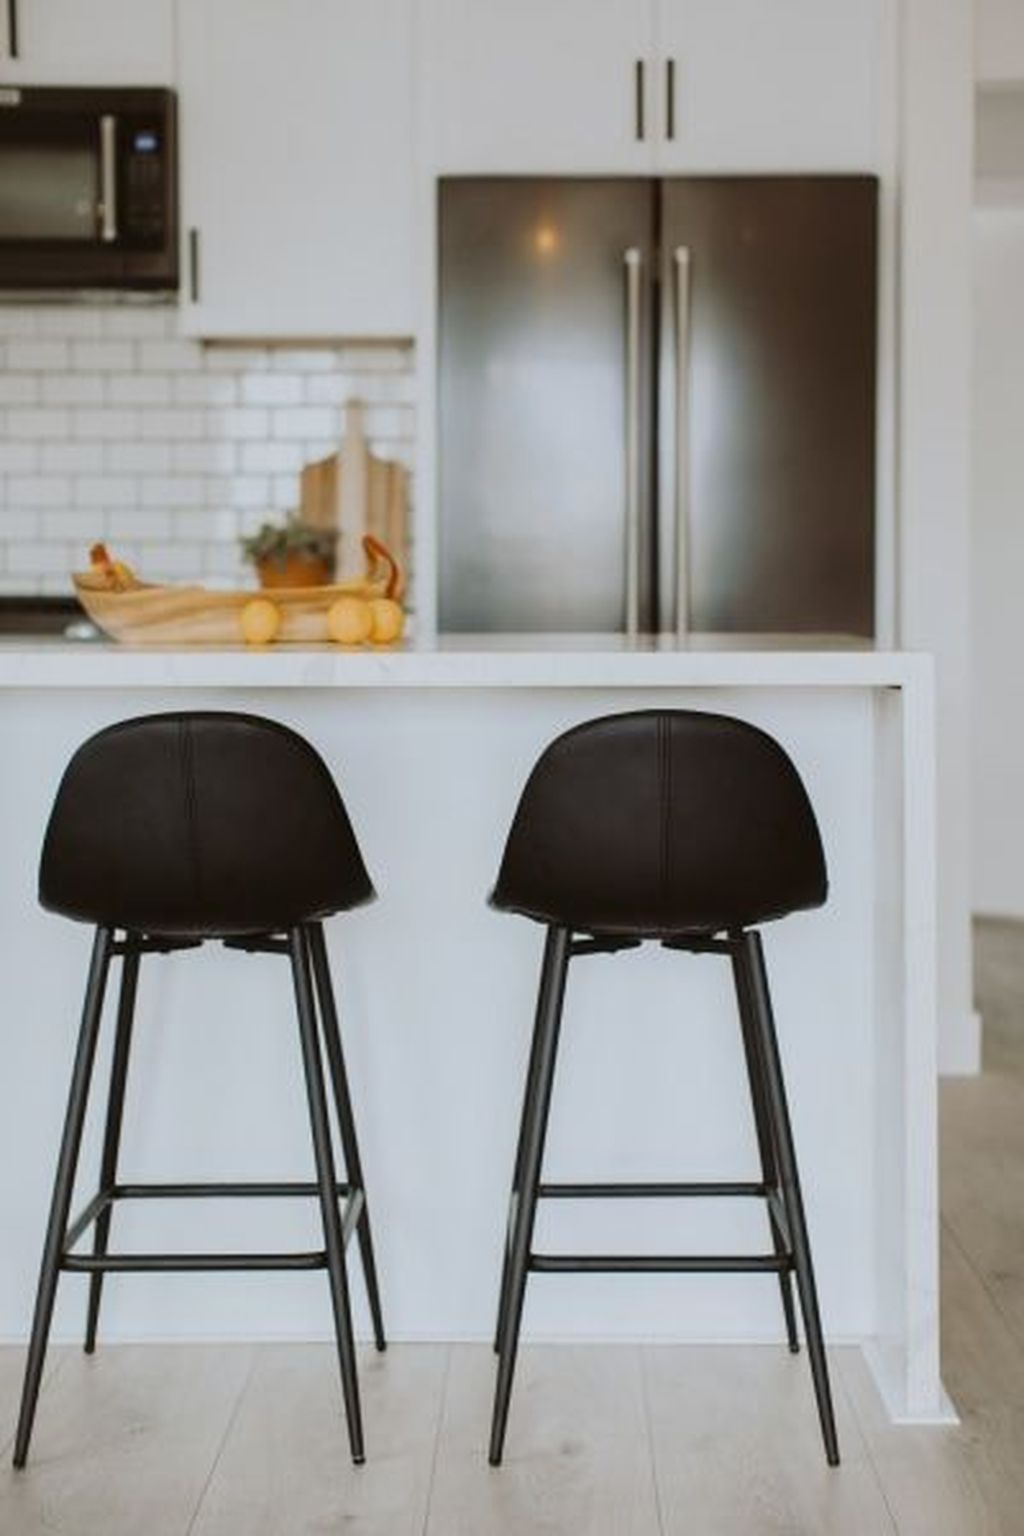 Modern Black Kitchens Design Ideas For Bachelors Pad To Try Asap 09